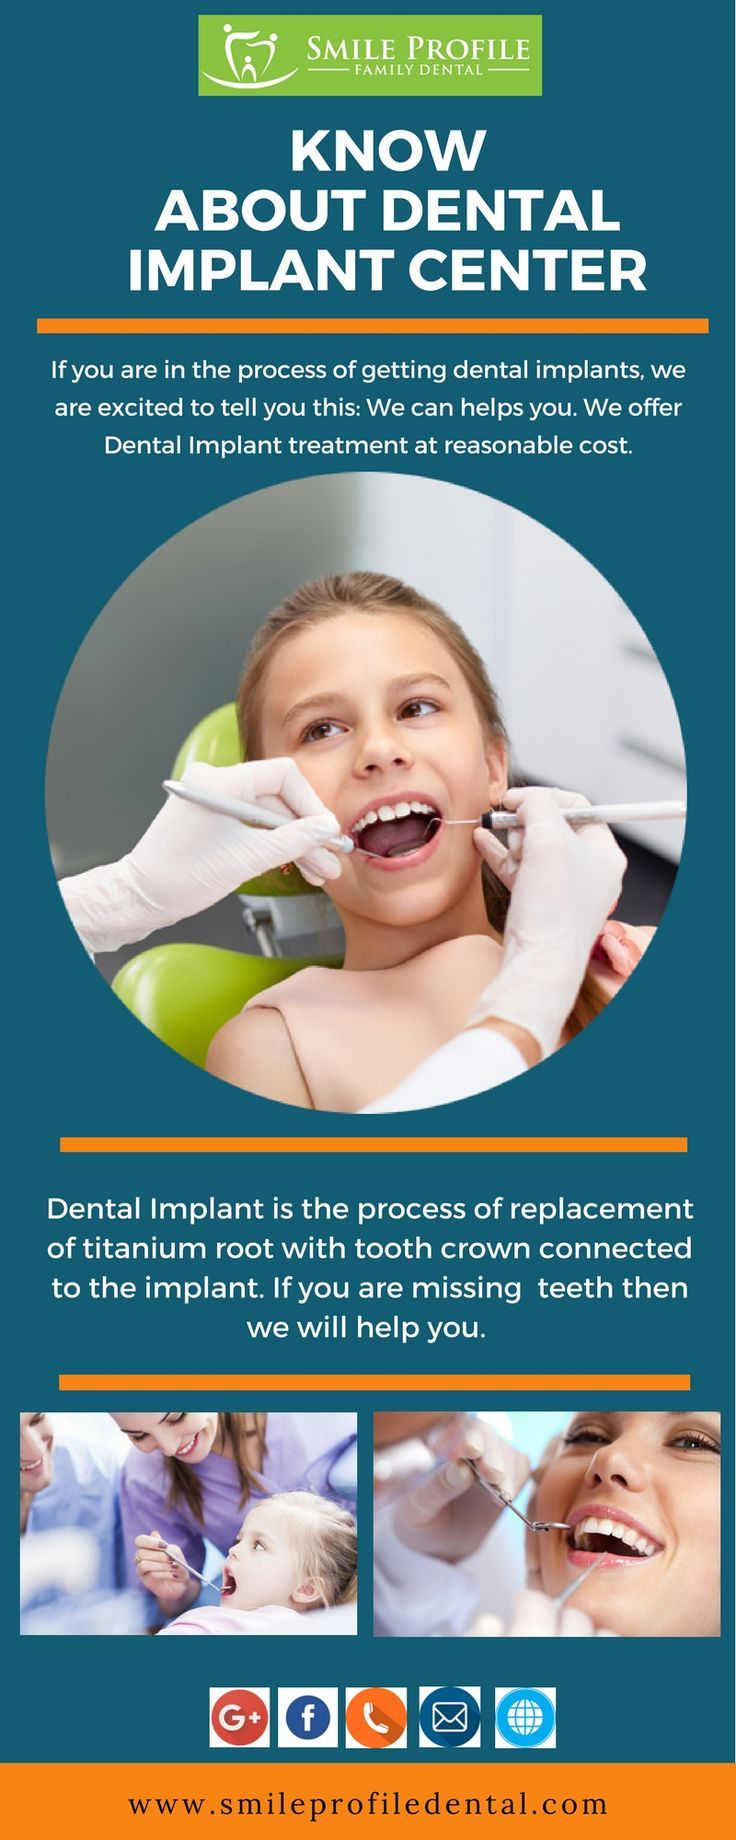 If you are in the process of getting #dental implants, we are excited to tell you this: We can helps you. We offer Dental #Implant treatment at reasonable cost.  Dental implants are a long-lasting and excellent treatment for replacing missing or failing #teeth, and securing #dentures. If you are #missing teeth then we can help you.